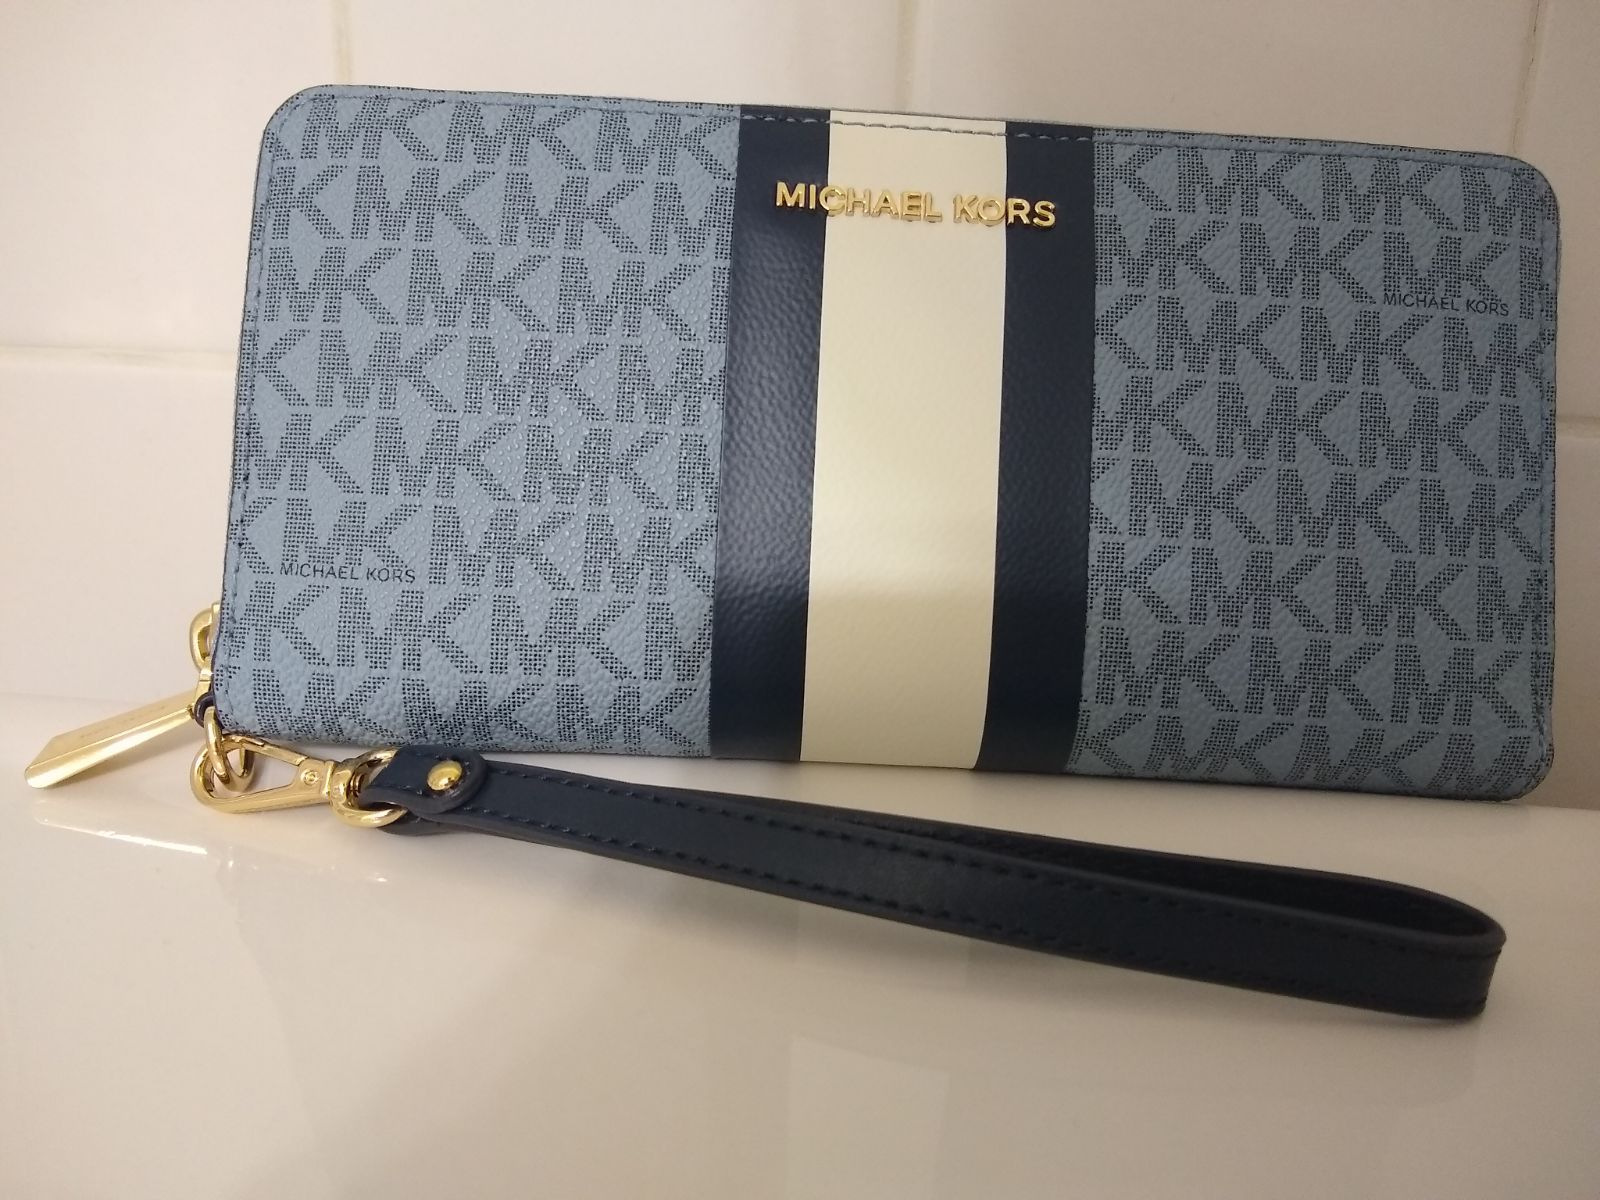 Michael kors women's clutch wallet